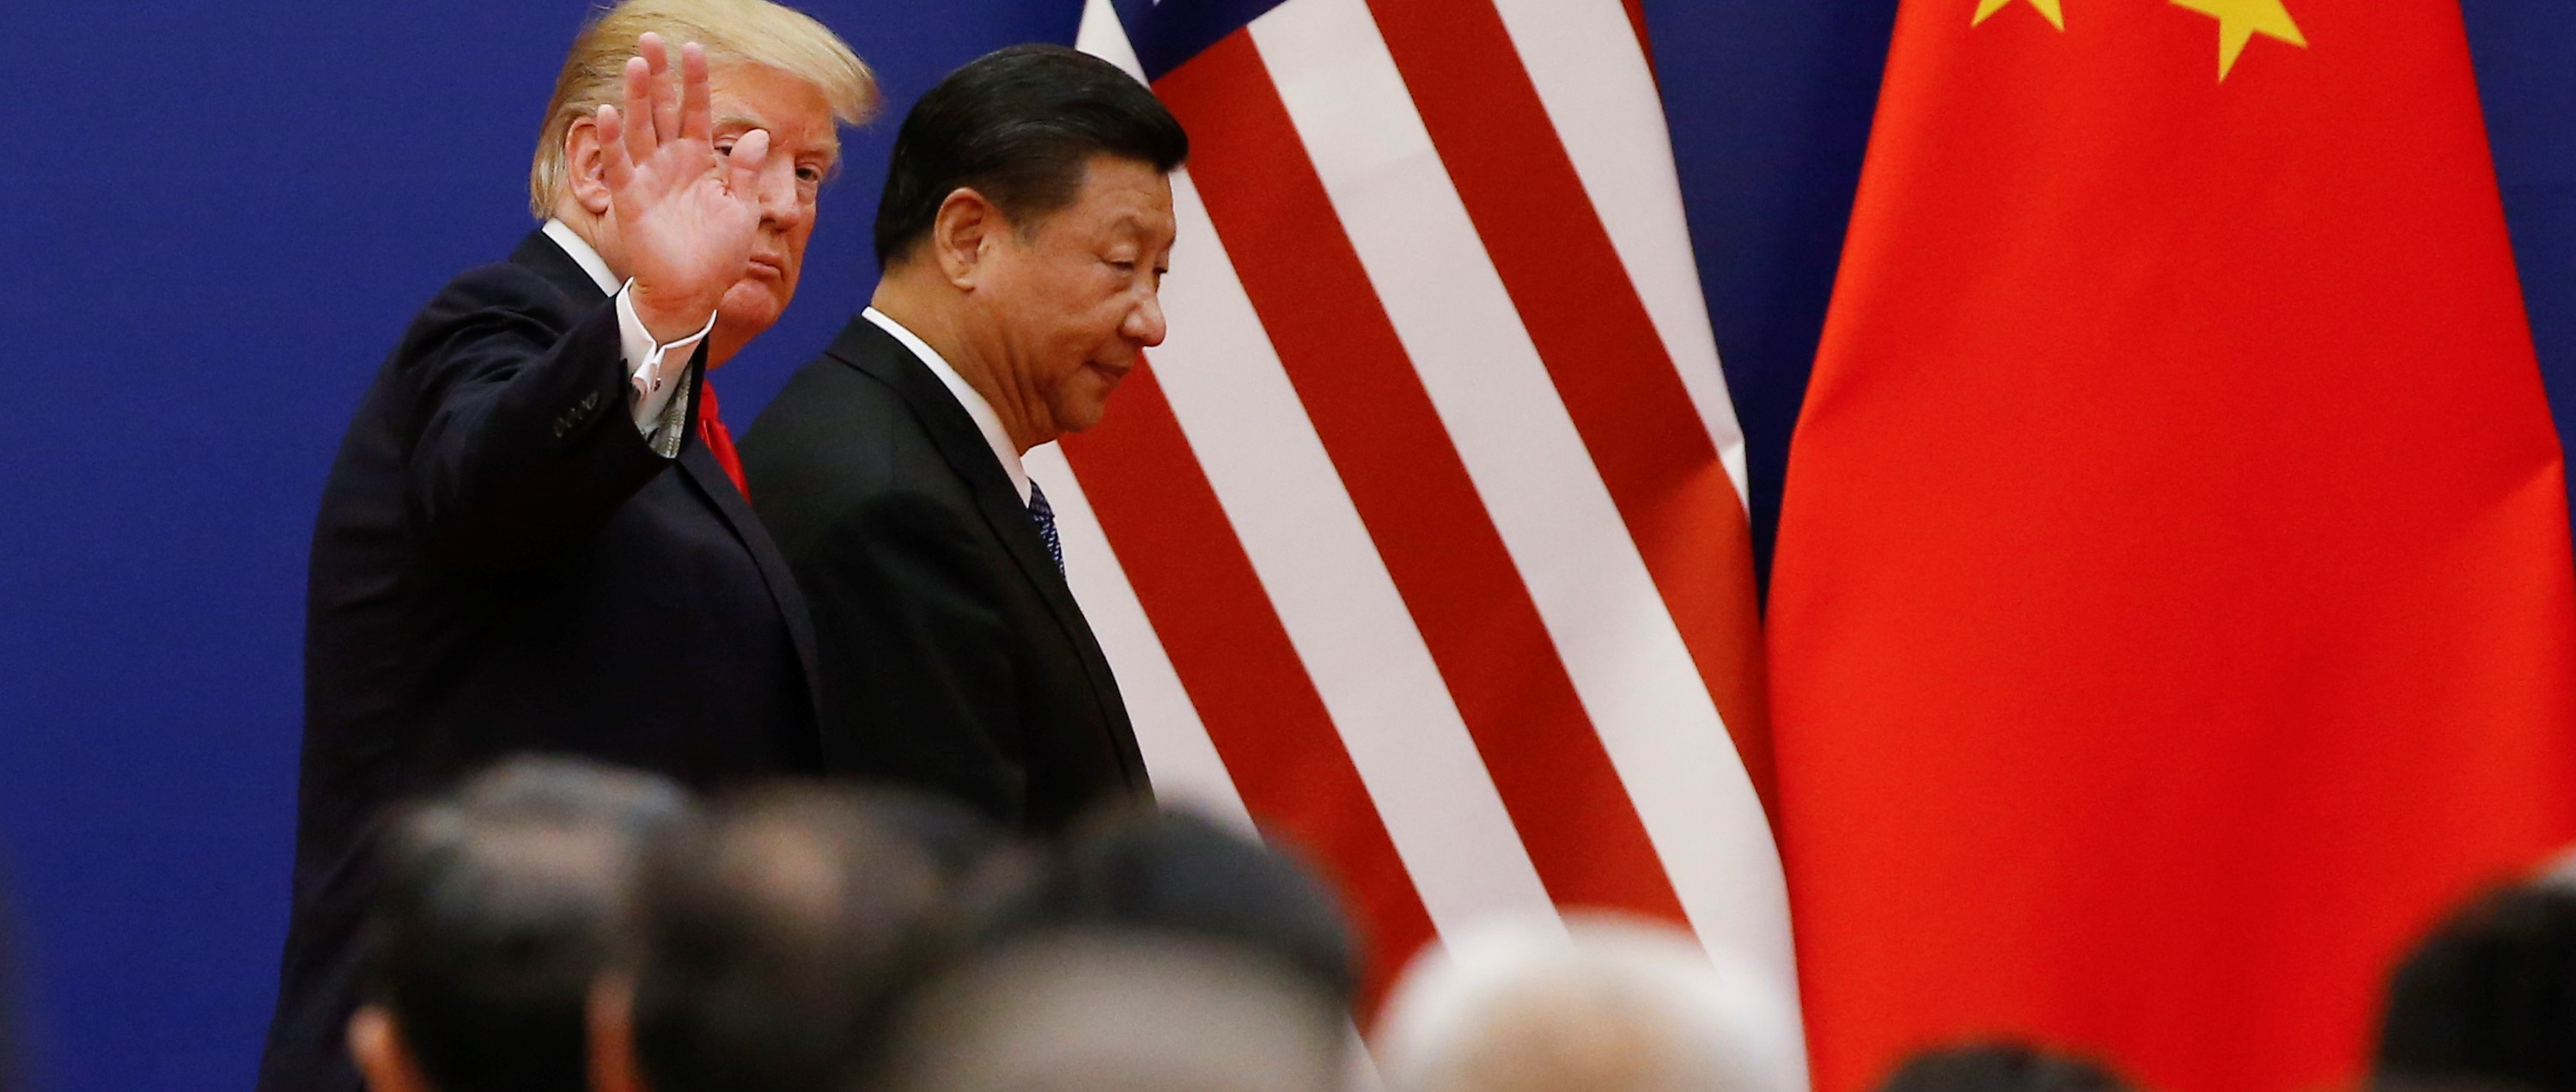 Presidents Donald Trump and Xi Jinping meeting in Beijing, November 2017 (Photo: Thomas Peter-Pool/Getty Images)